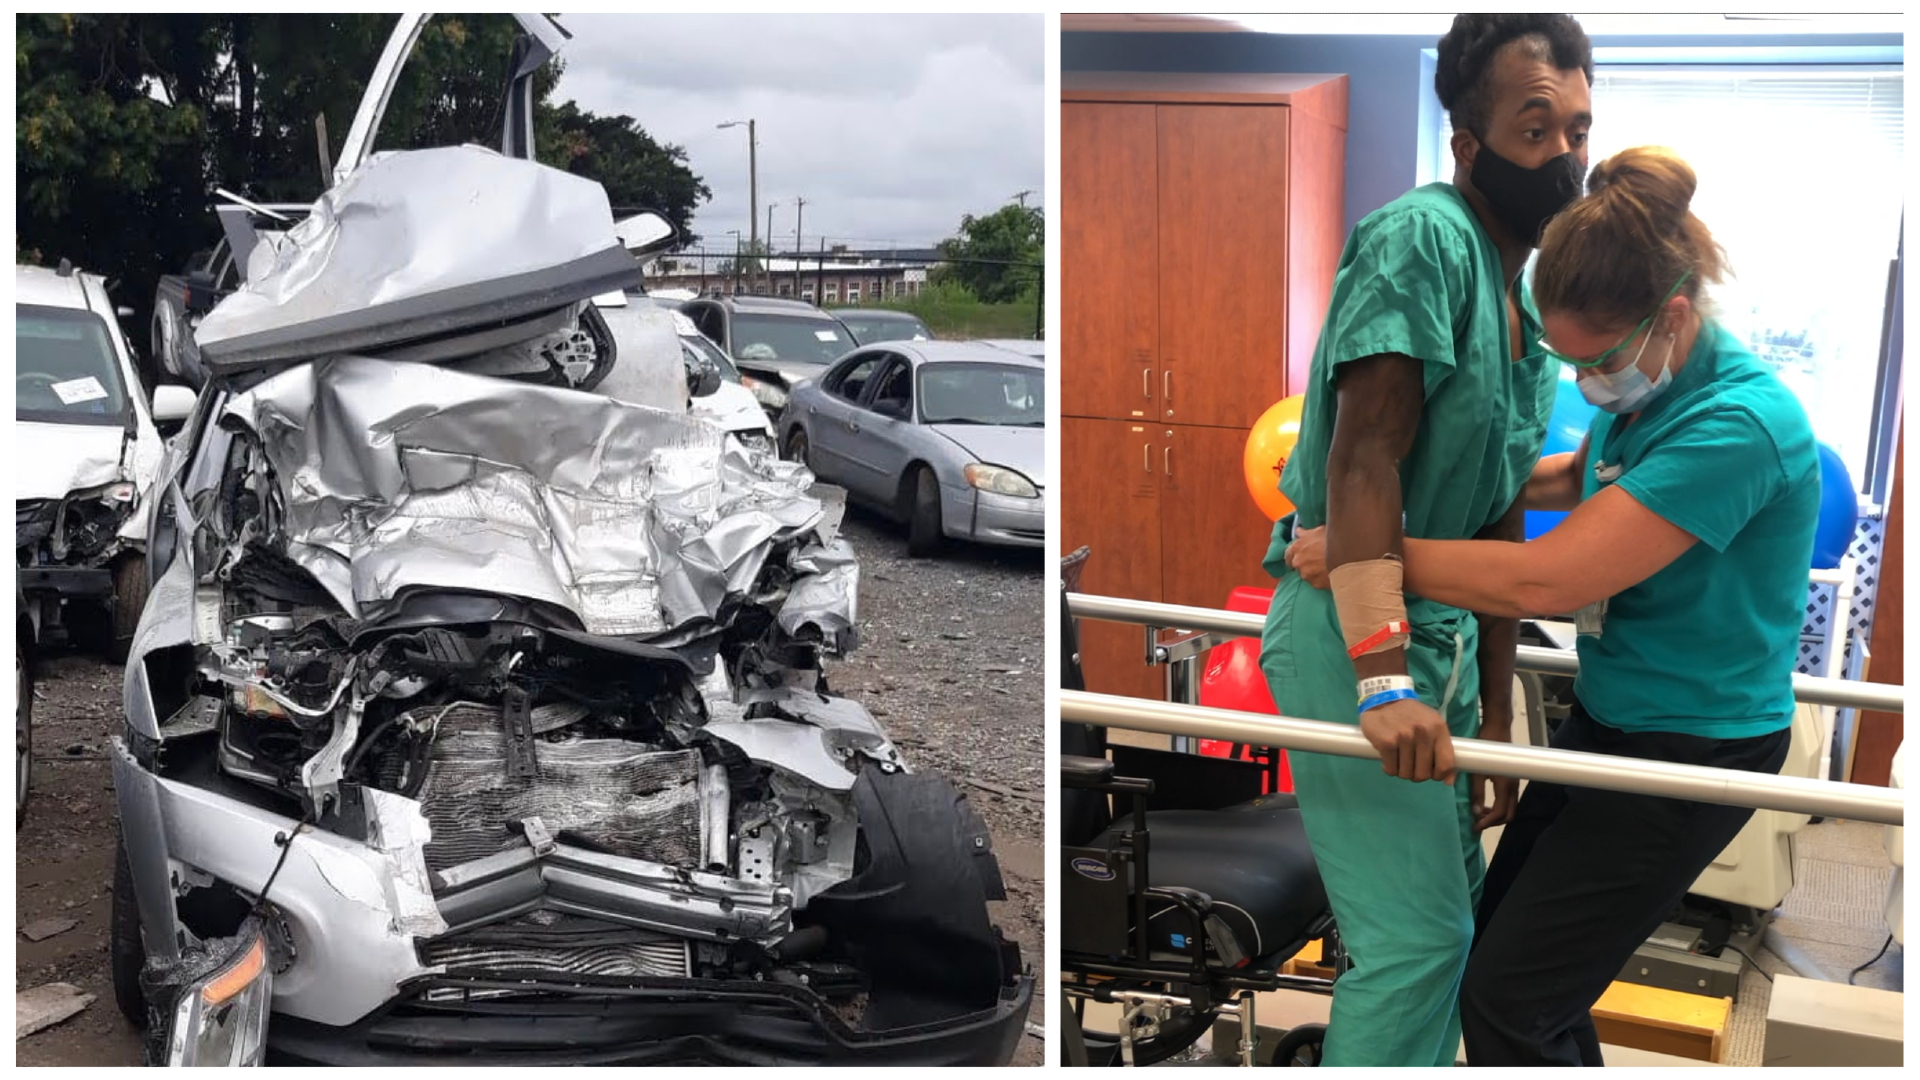 The last thing Jabari remembered before his accident was switching lanes behind a truck. The next memory he had was waking up in the STICU at Atrium Health Carolinas Medical Center.